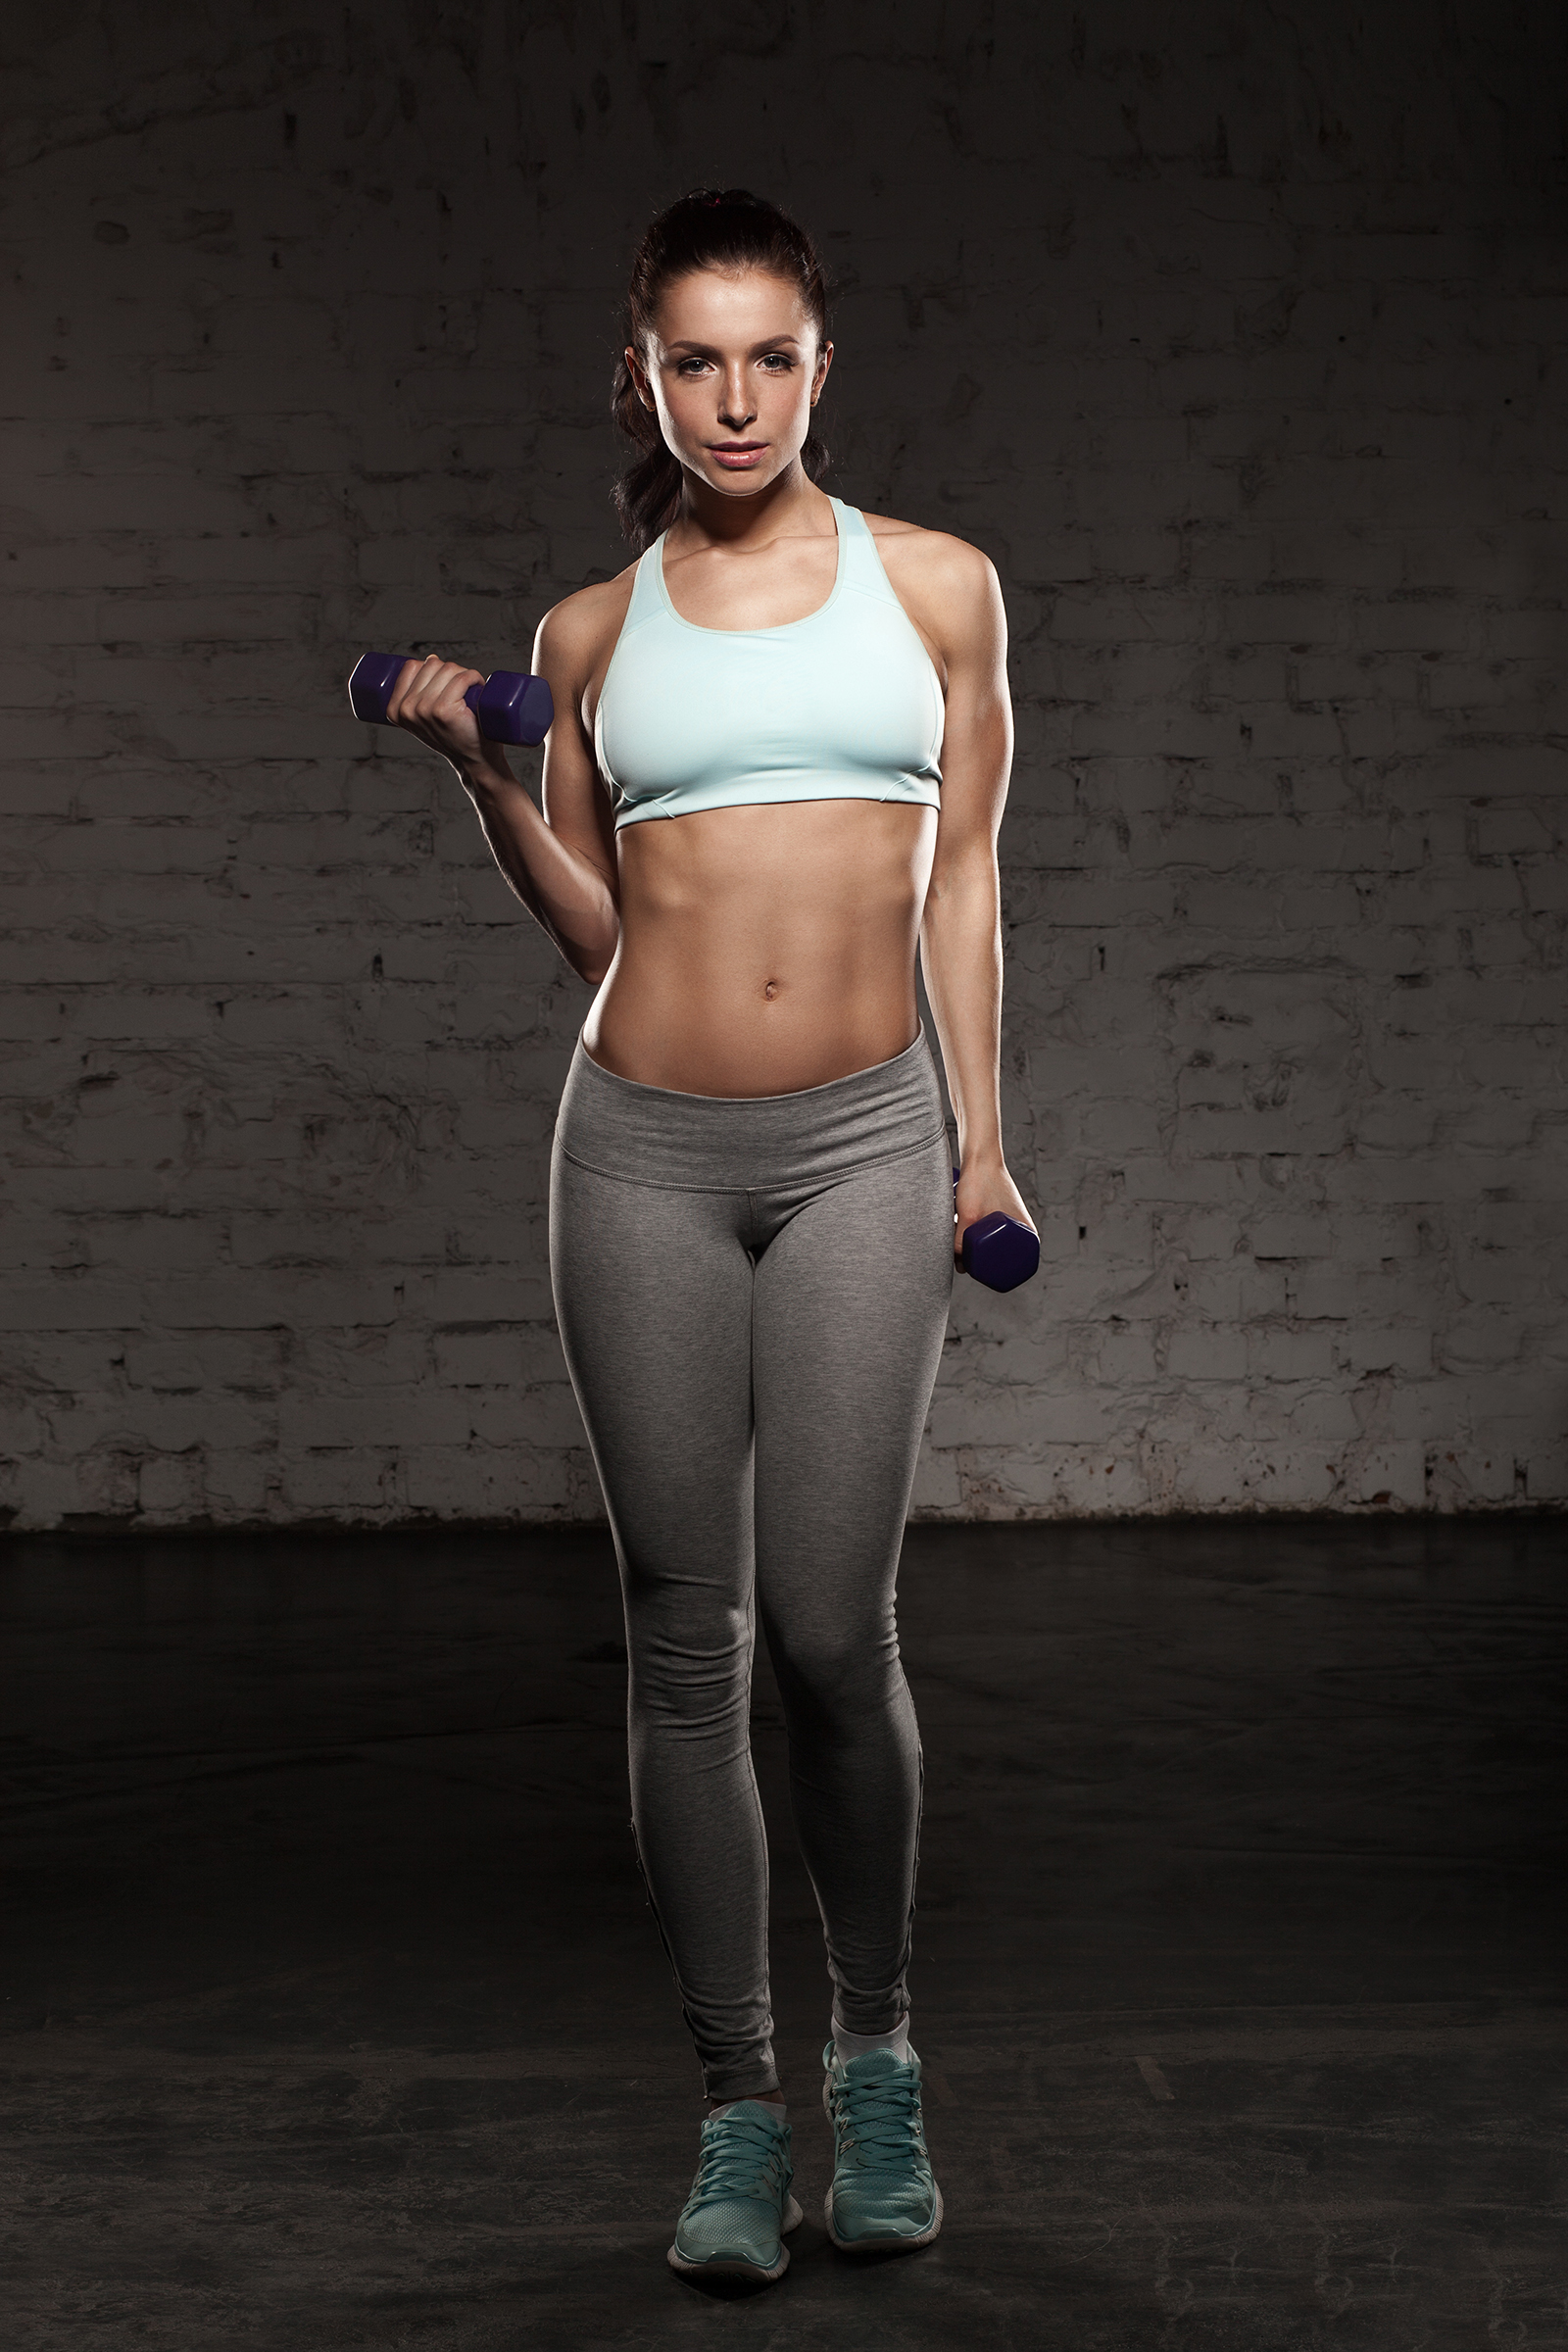 Wearing tight pants fitness beauties 53500